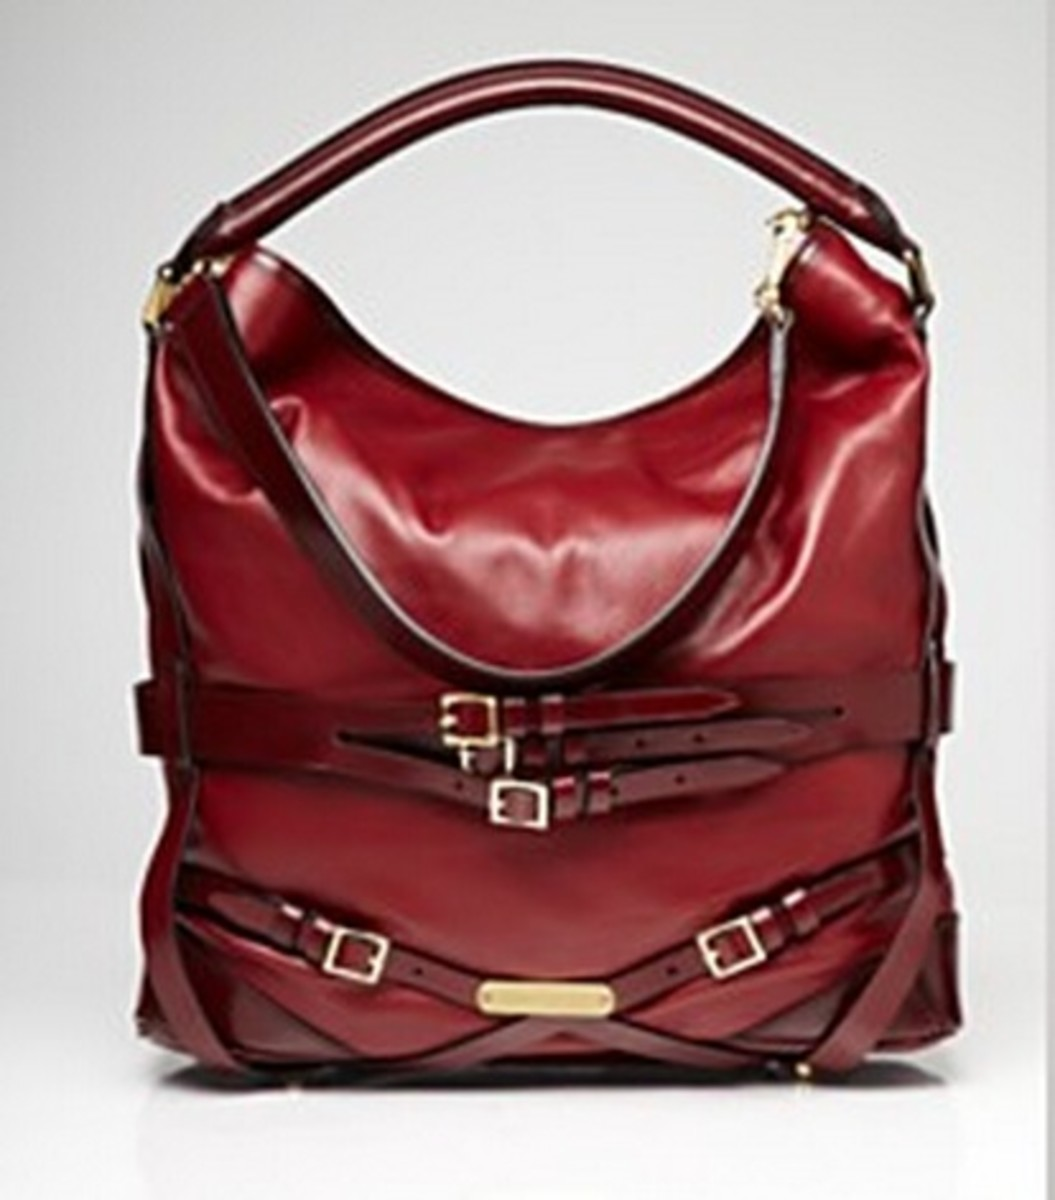 Burberry Hobo, Gosford Medium $1,495